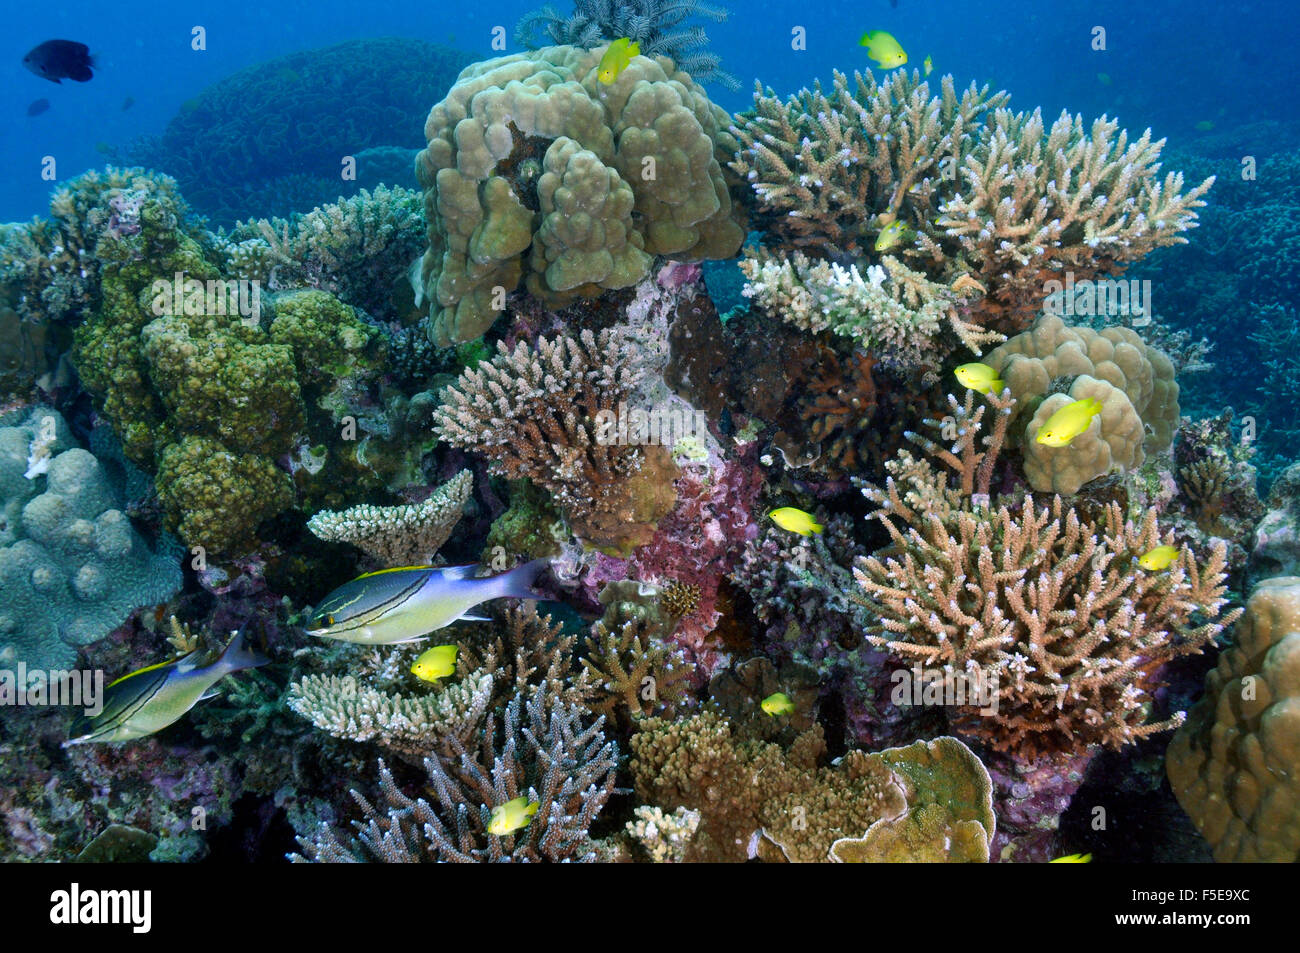 Highly diverse coral reef with fishes at Seche Croissant, Noumea, New Caledonia - Stock Image